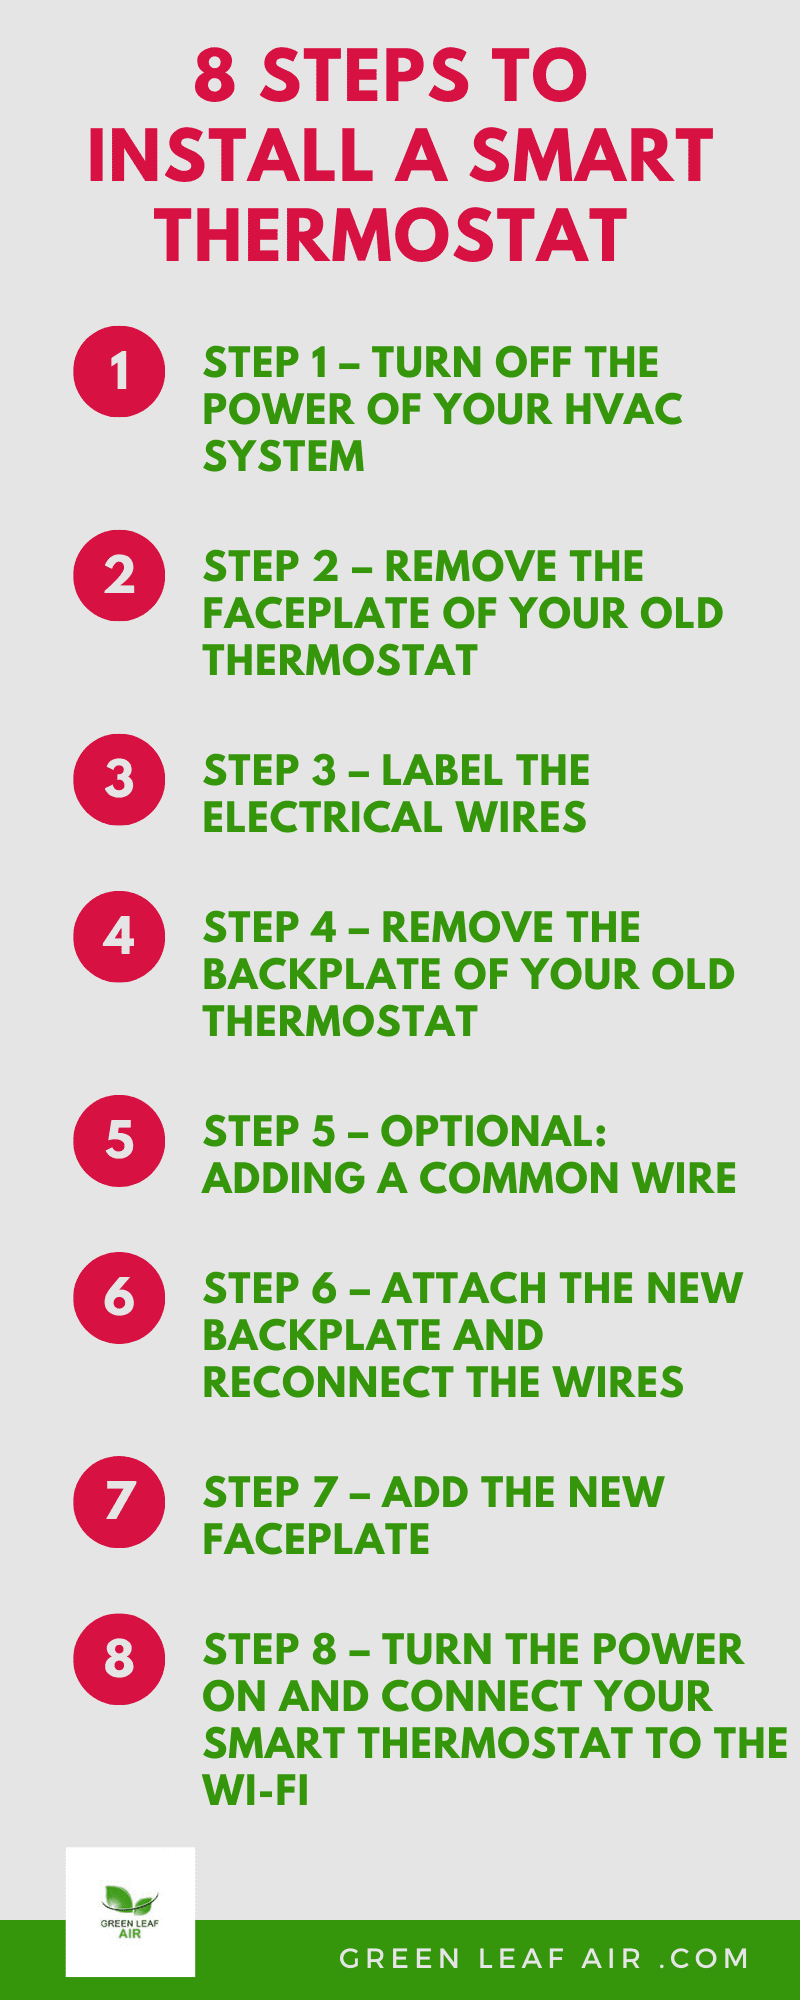 8 Steps To Install A Smart Thermostat